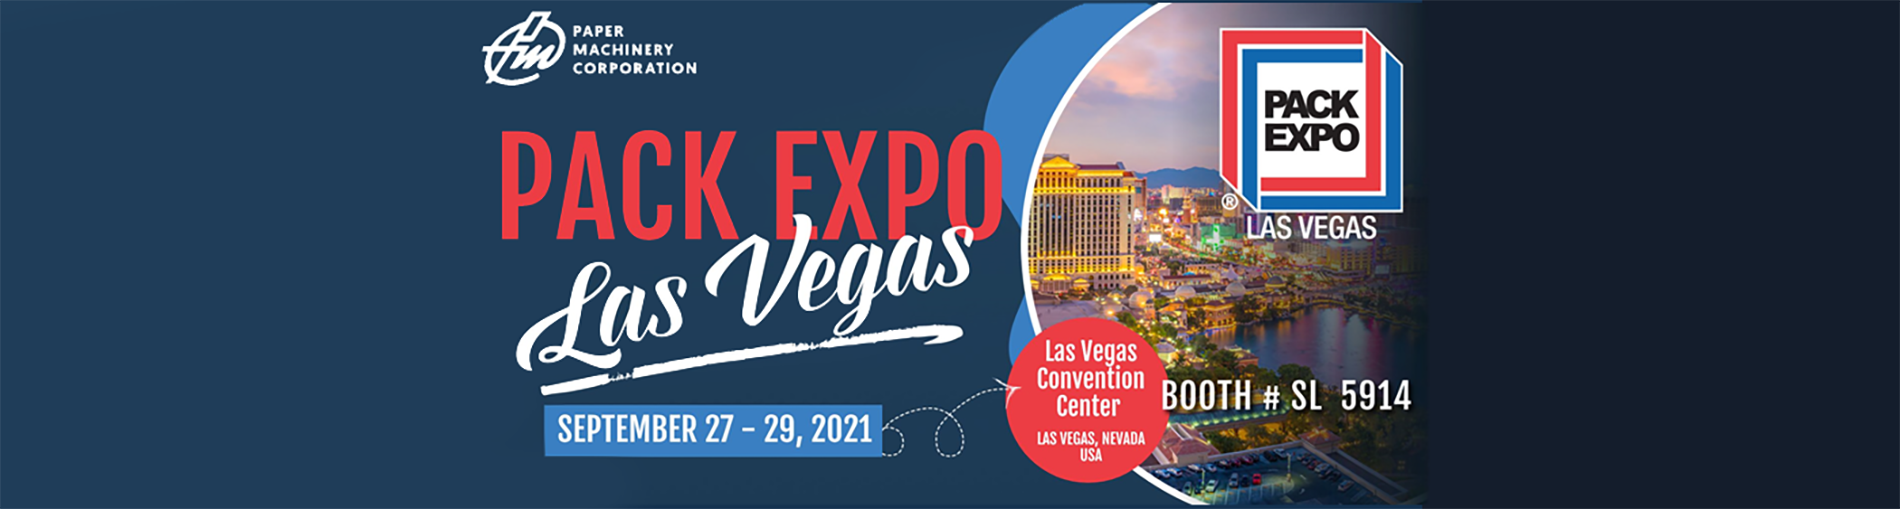 Paper Machinery Corporation (PMC) Exhibiting at PACK EXPO Las Vegas, September 27th -29th